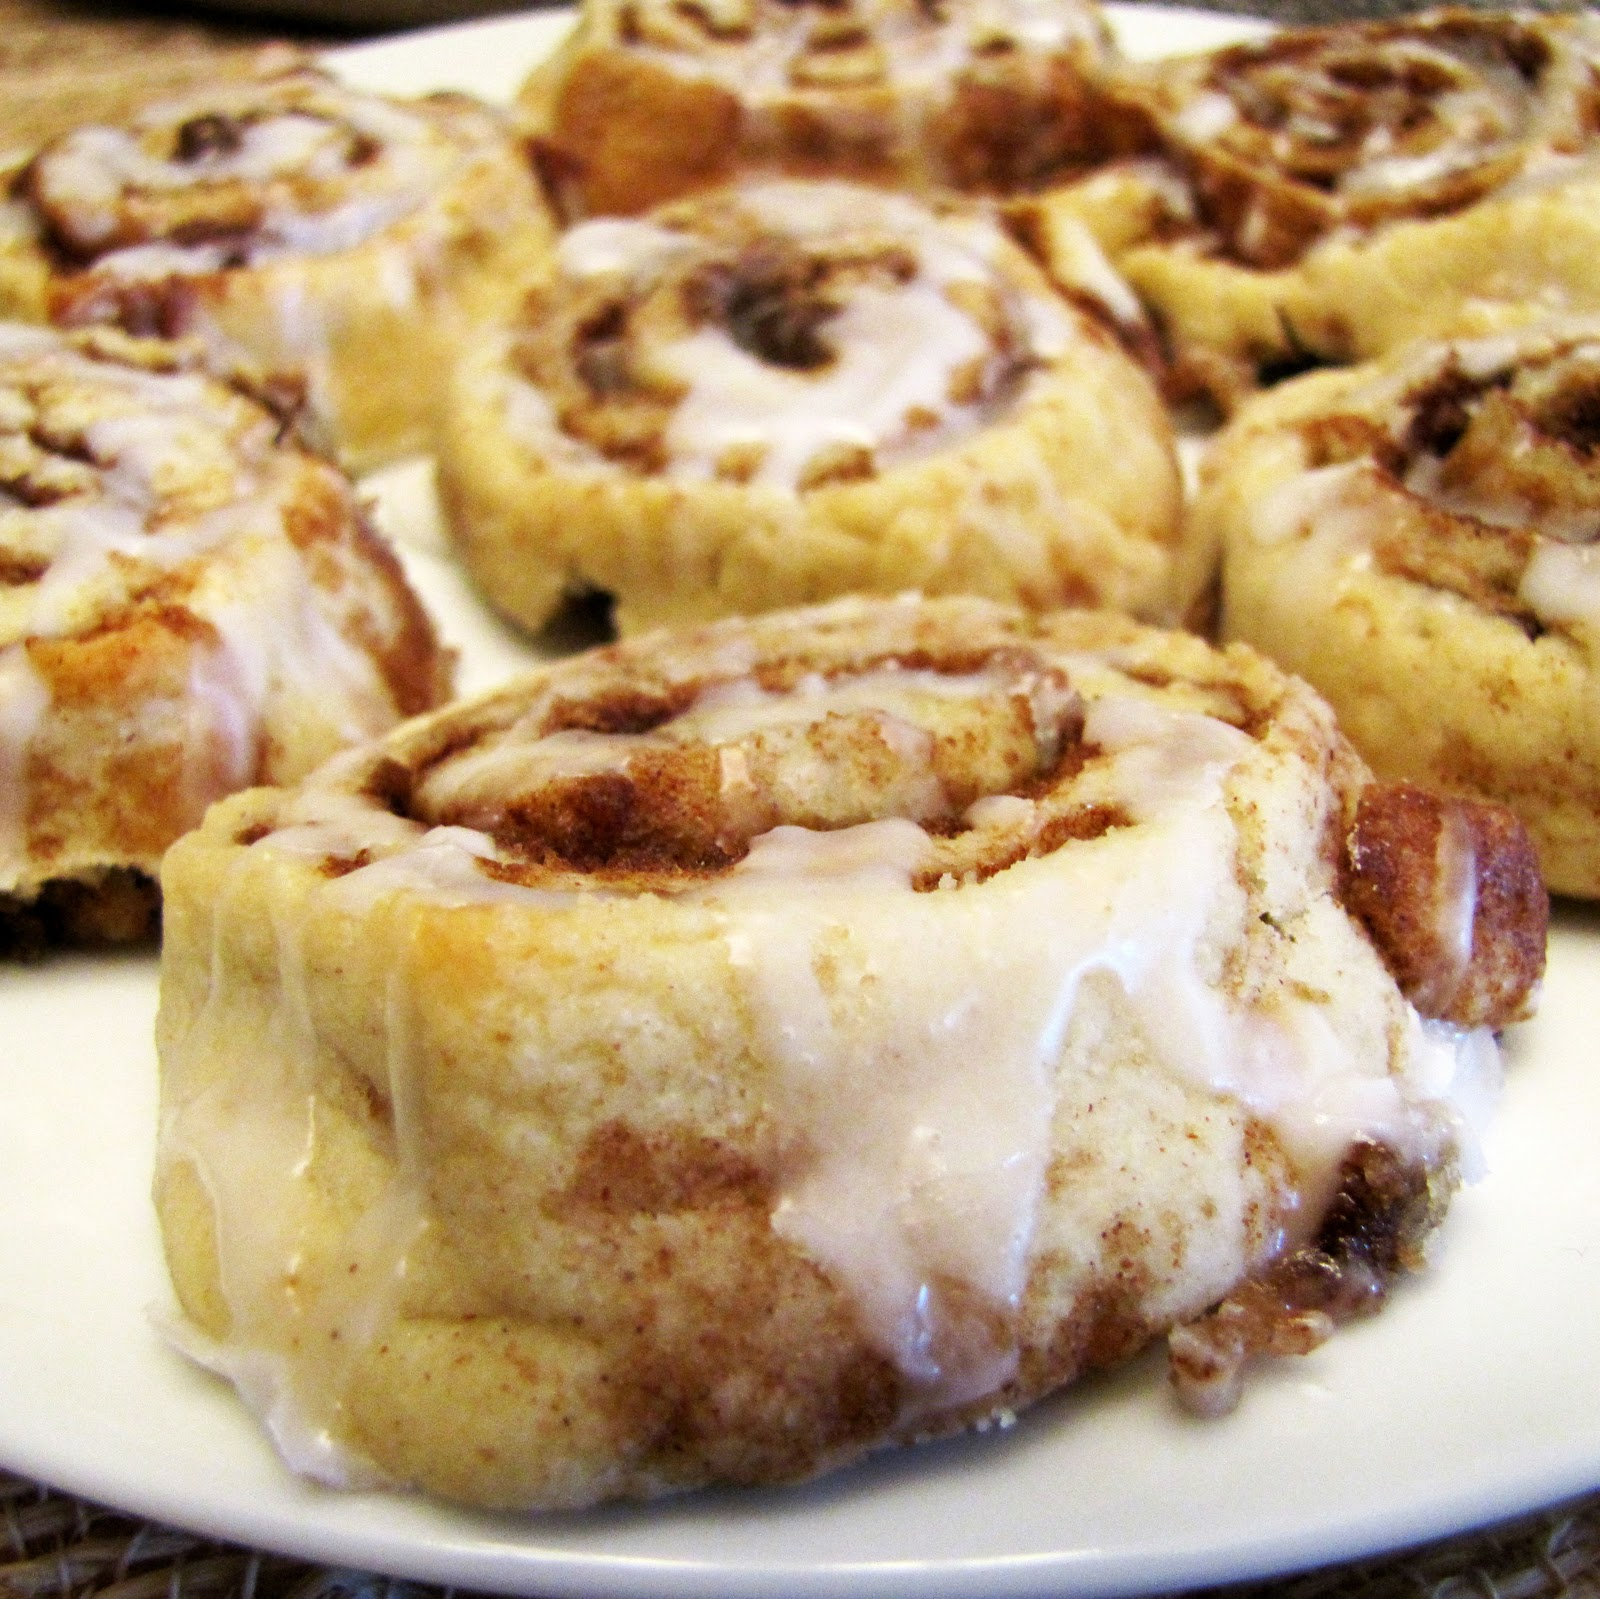 Rumbly in my Tumbly: Cinnamon Roll Cookies